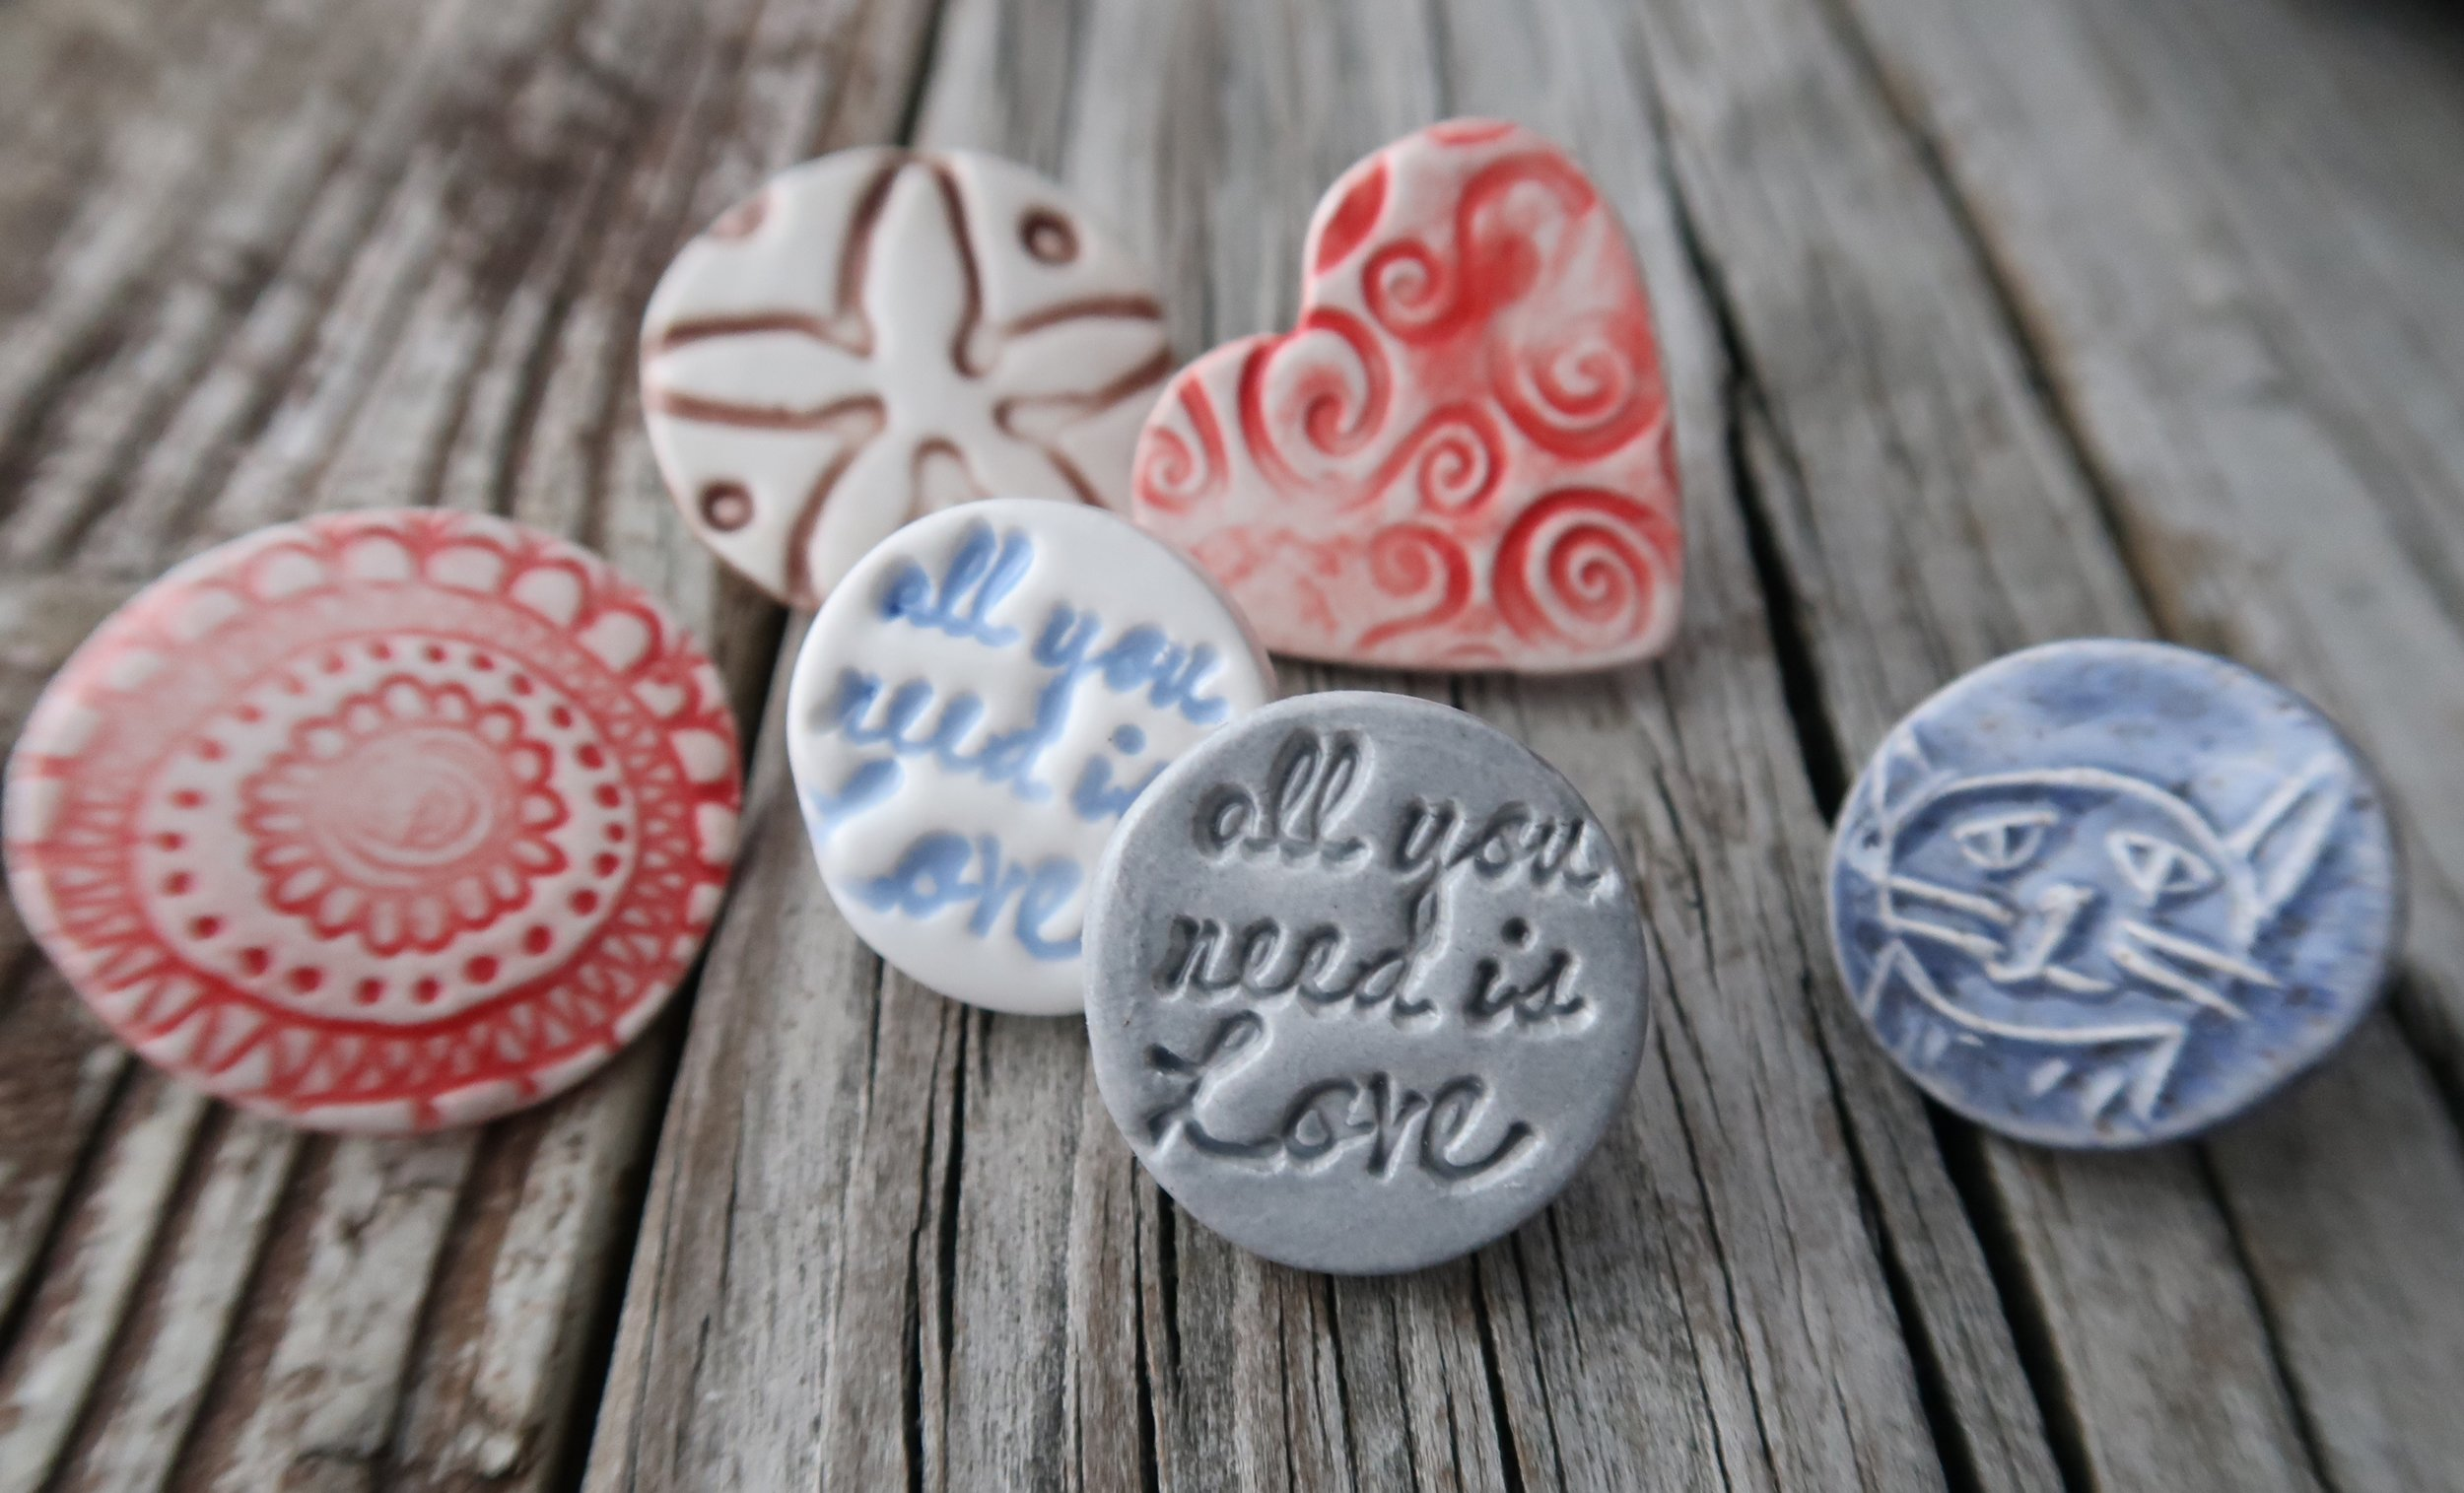 small ceramic pins for backs or backpacks as well and shirts!